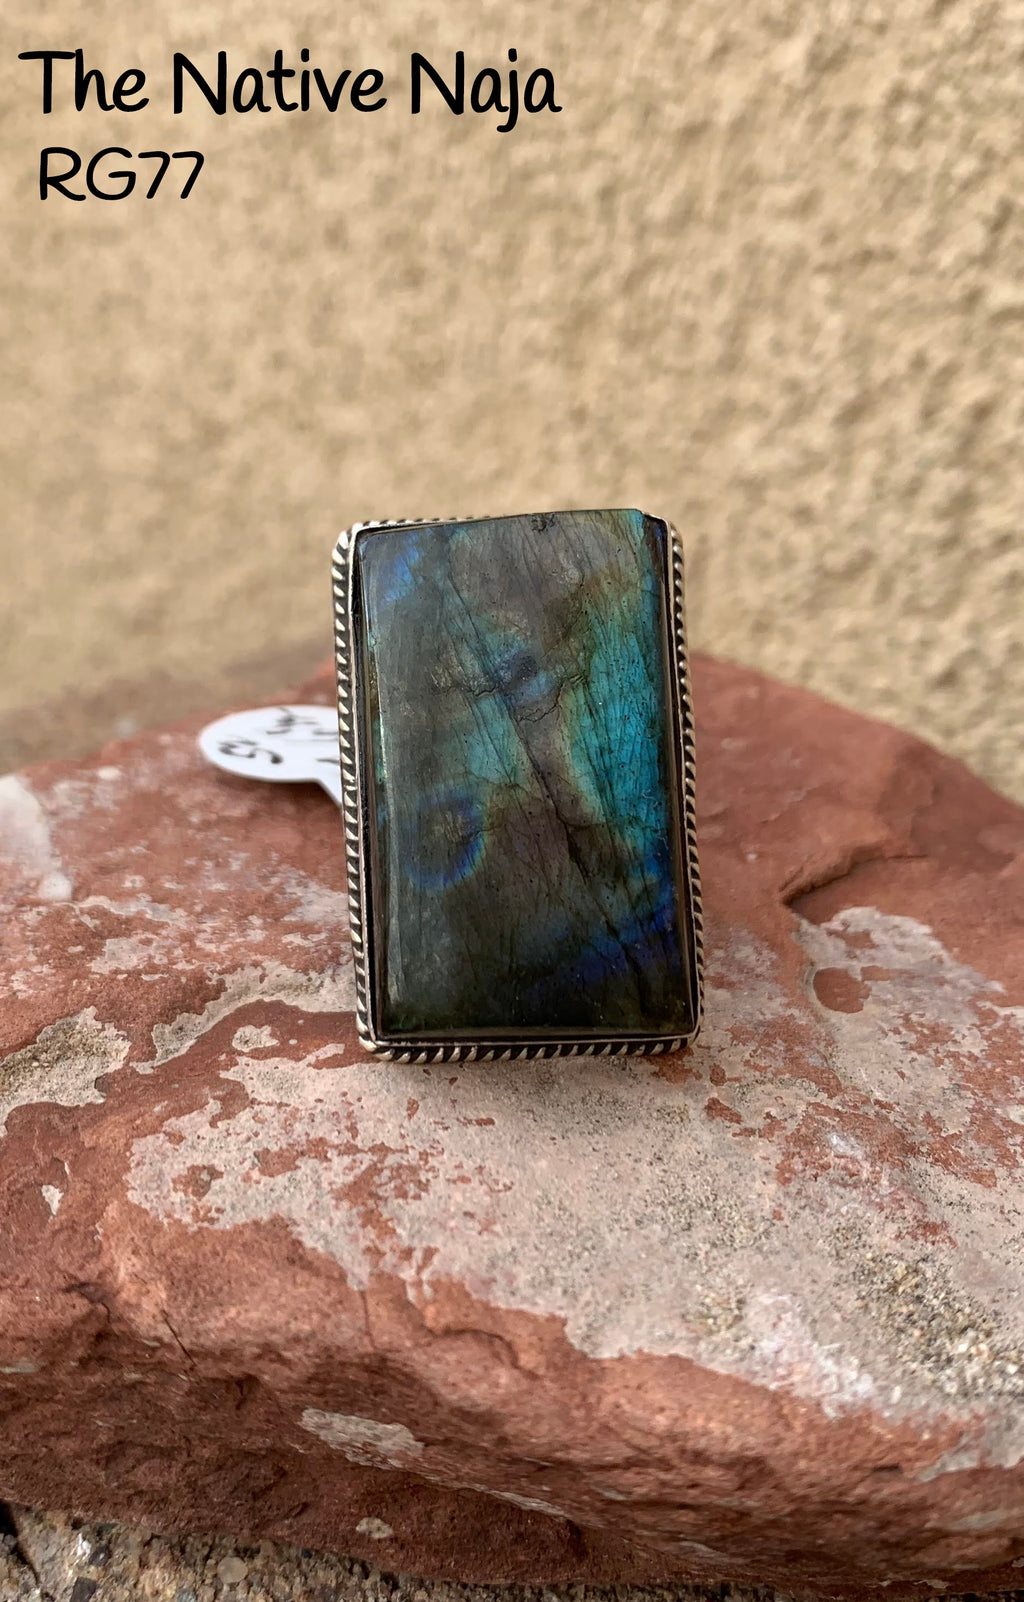 Navajo Genuine Roped Sterling Silver & Labradorite Ring Size 6 1/2 RG77